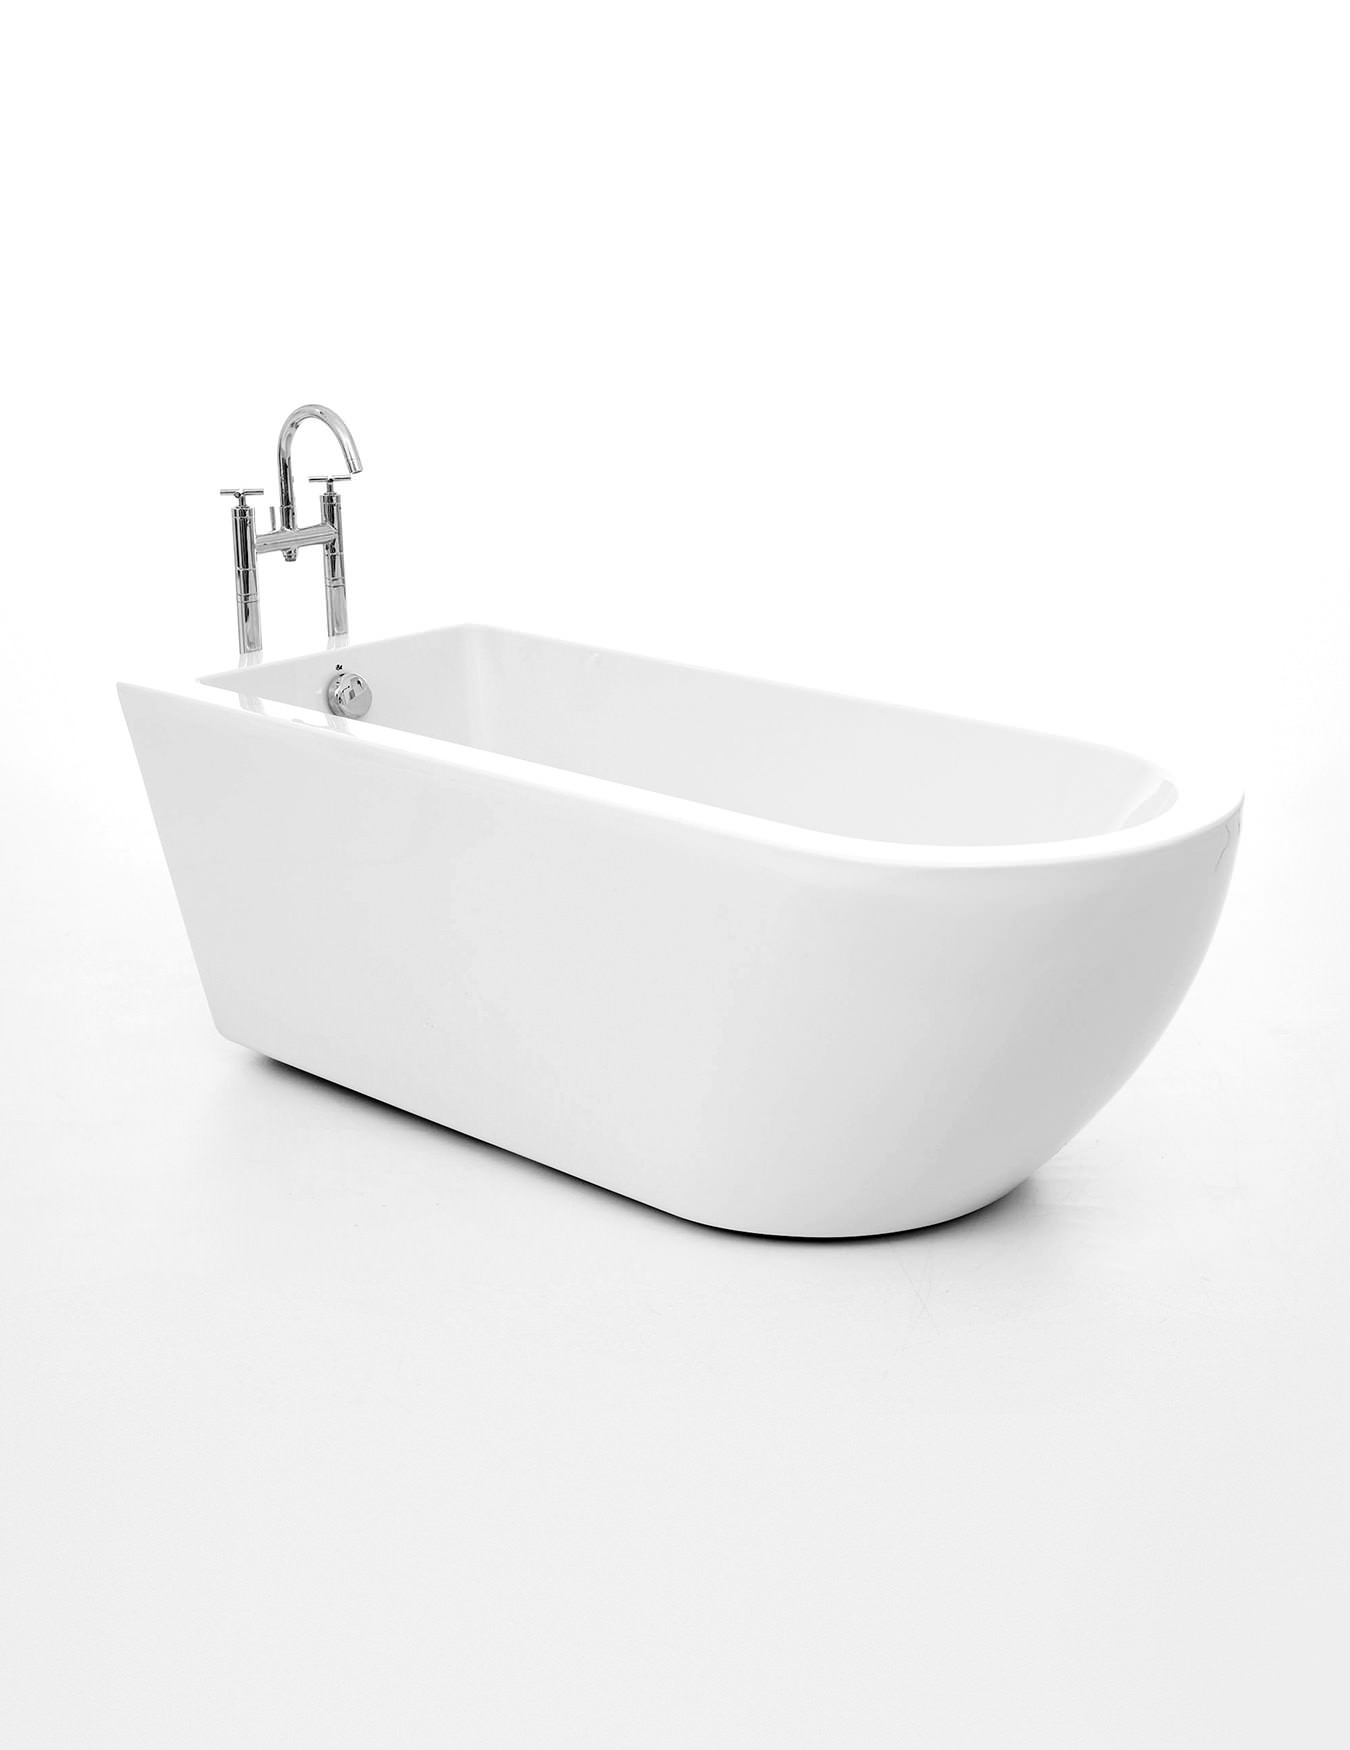 Royce Morgan Barwick Single Ended Freestanding Bath 1690 X 740mm